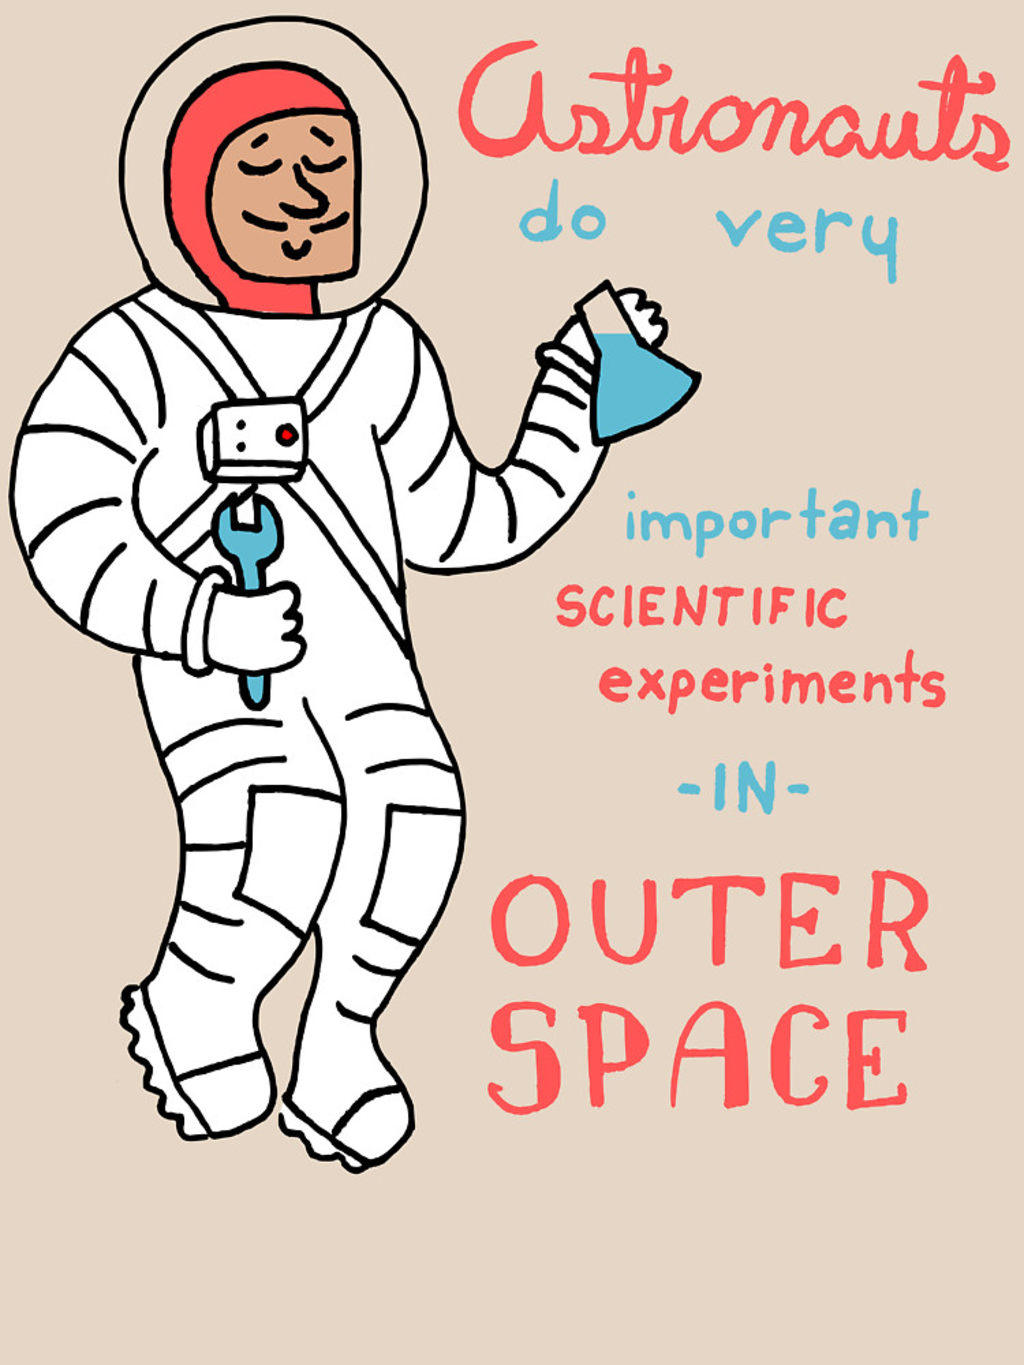 RedBubble: Scientific Astronauts - funny cartoon drawing with handwritten text